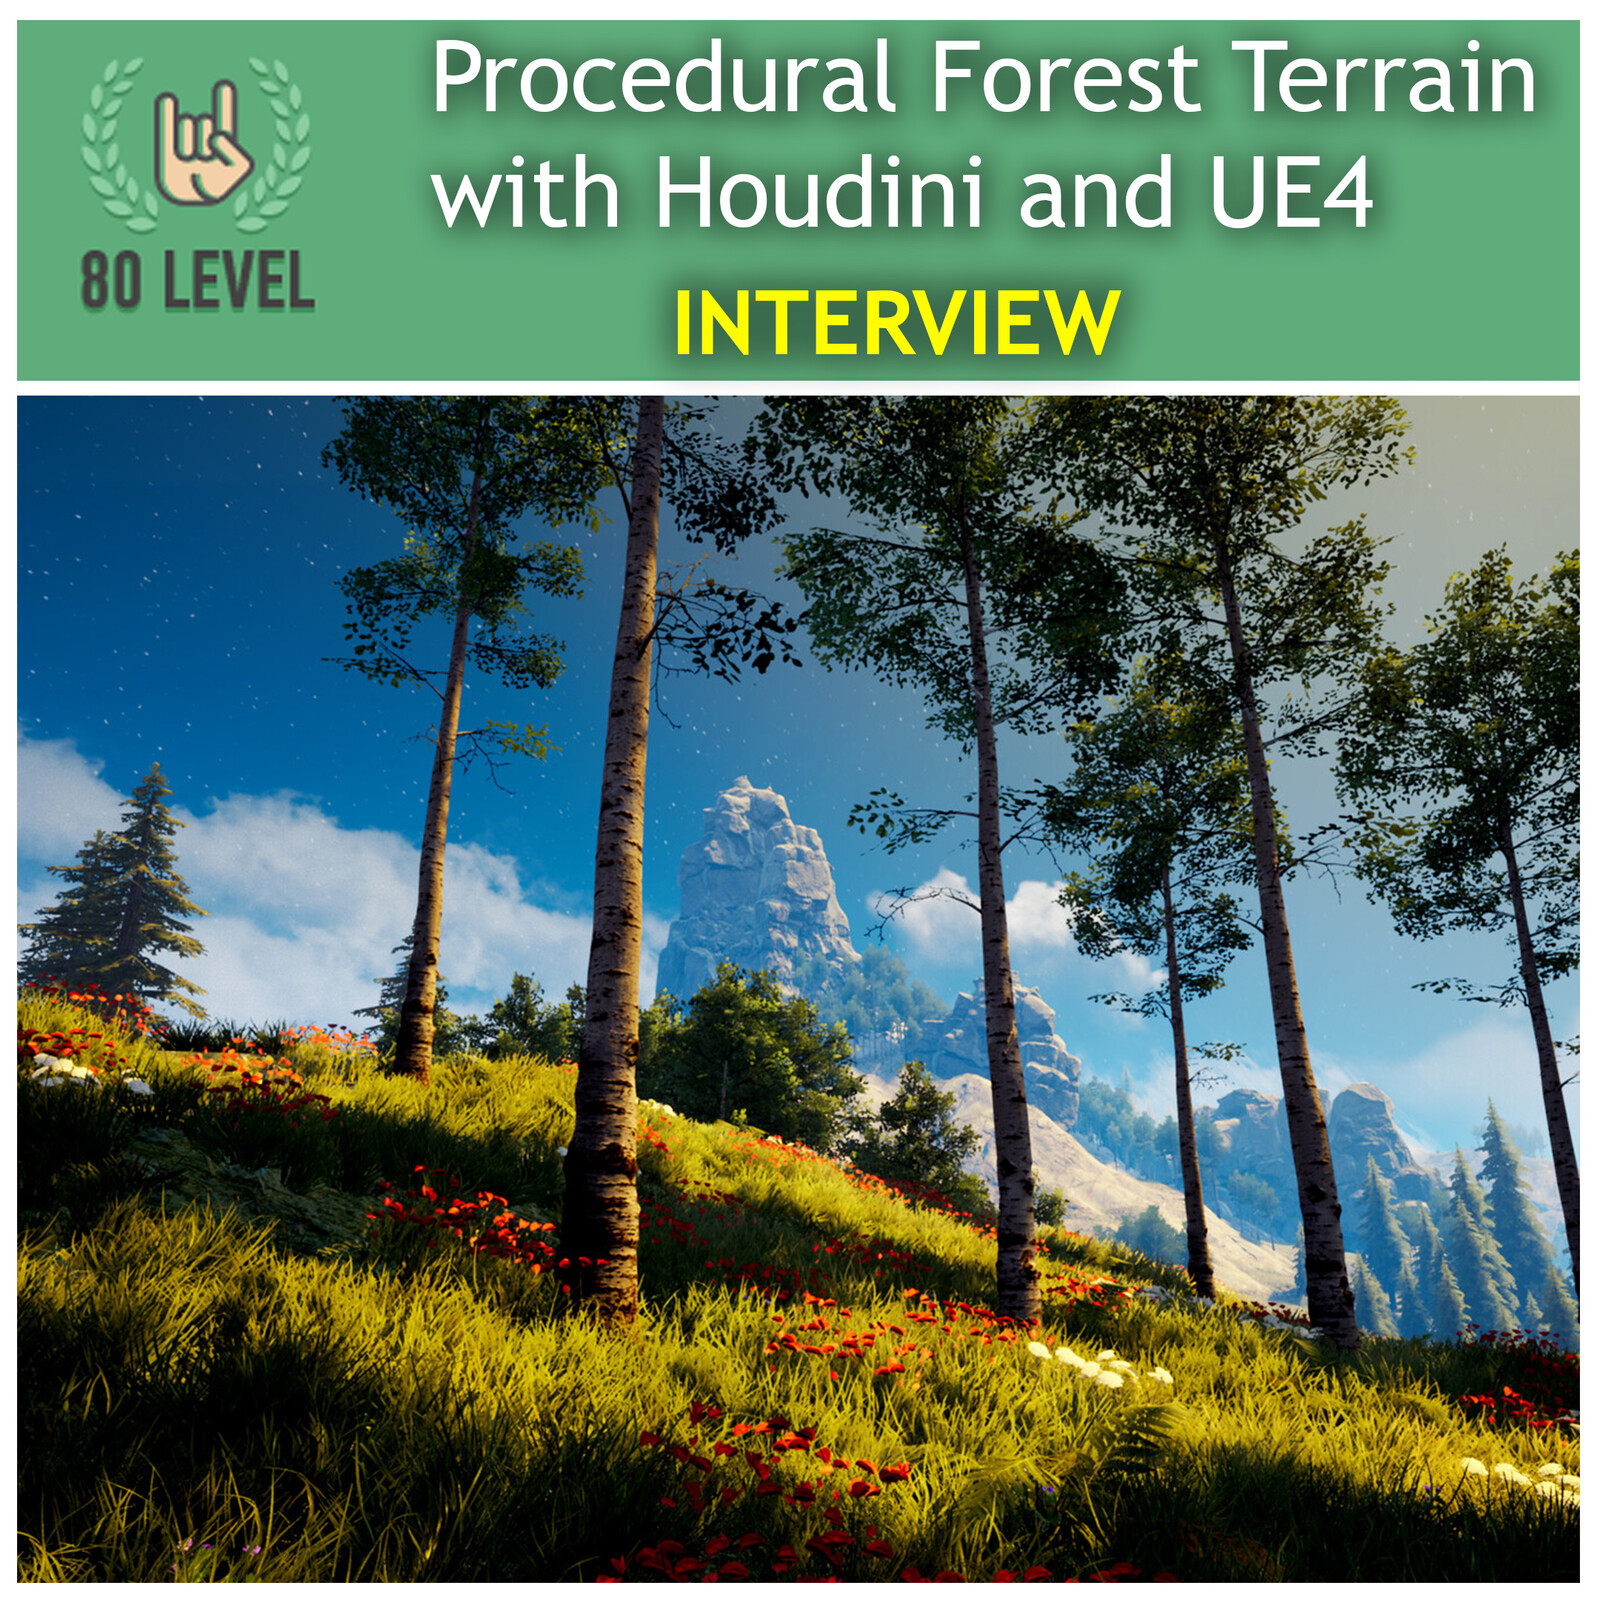 80.lv Article - Procedural Forest Terrain Production with Houdini and UE4